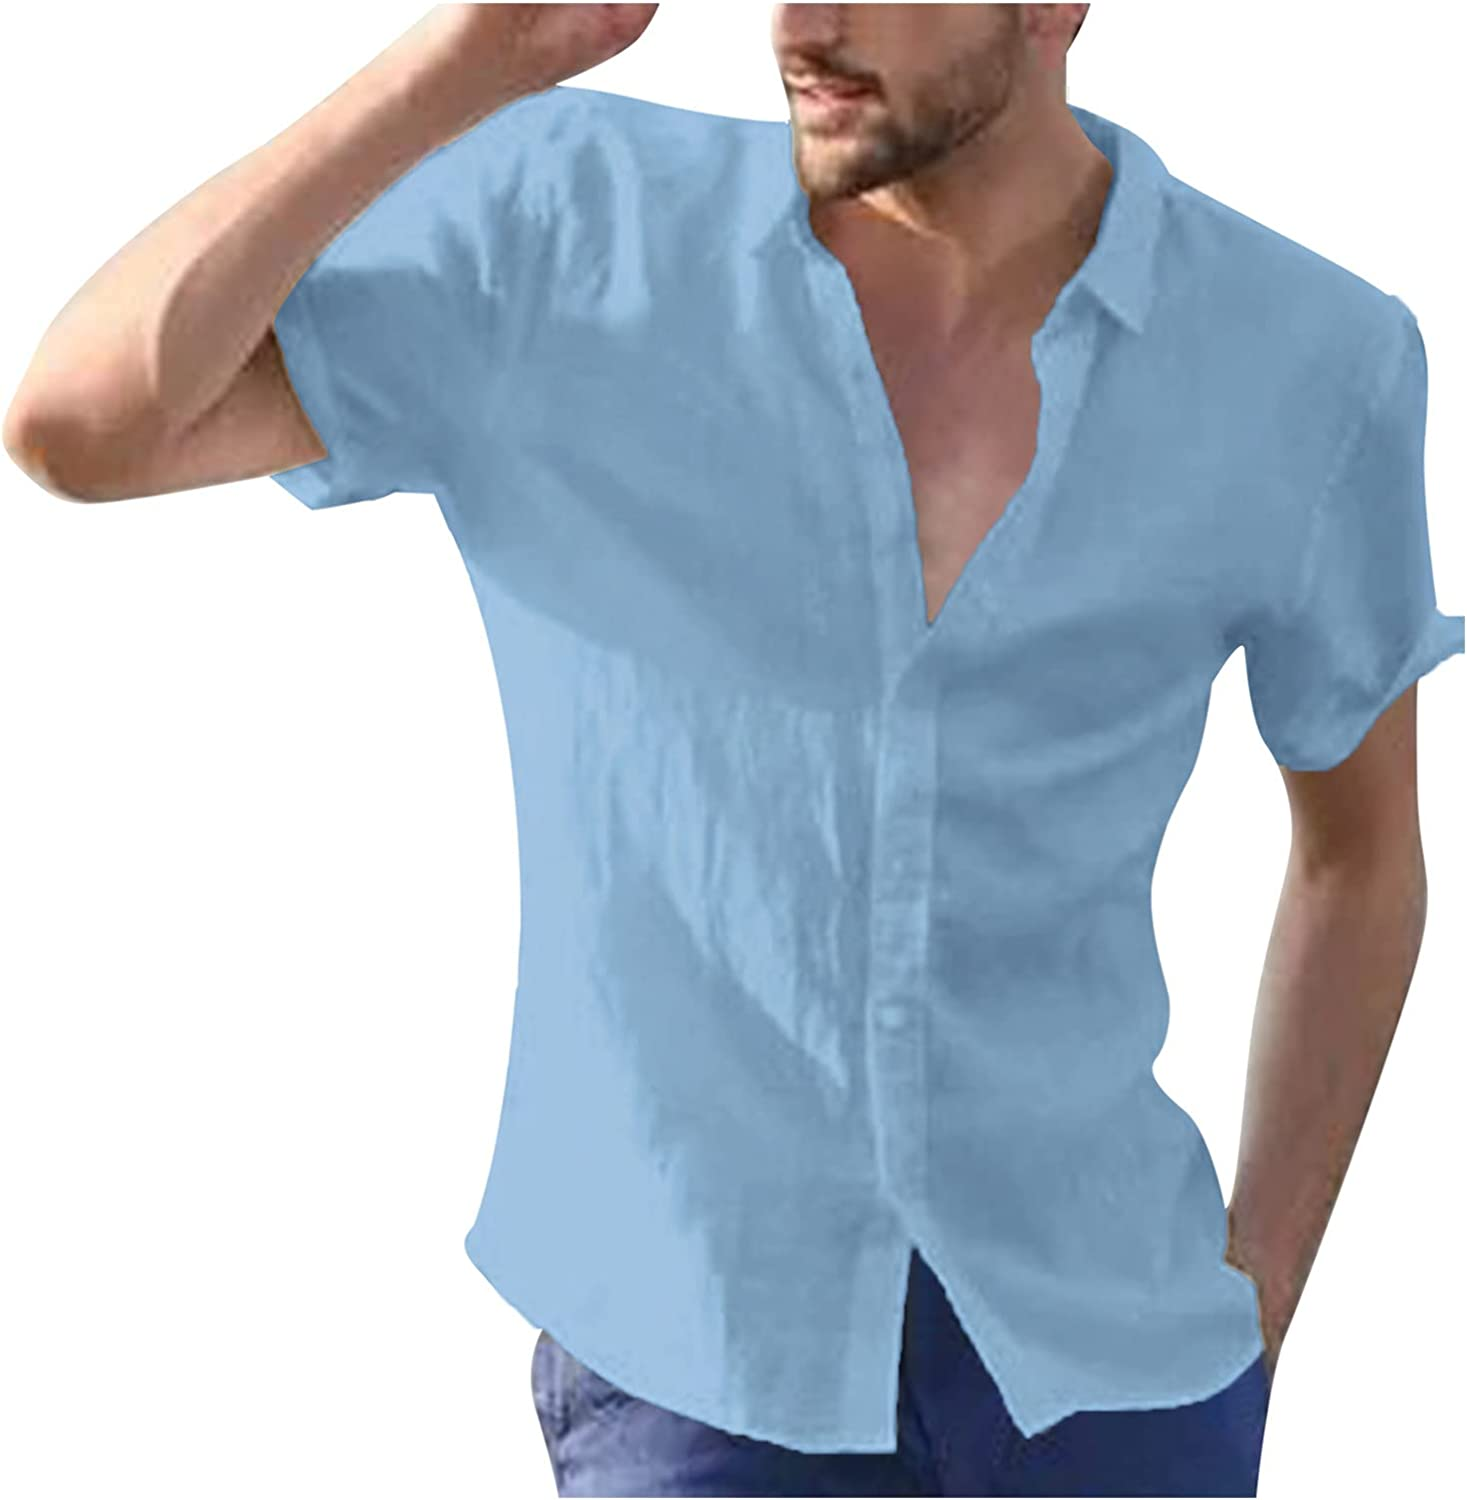 WOCACHI Button Down Shirts For Mens, Summer Turn-Down Collar Short Sleeve Solid Casual Tops Lightweight Tee Shirt